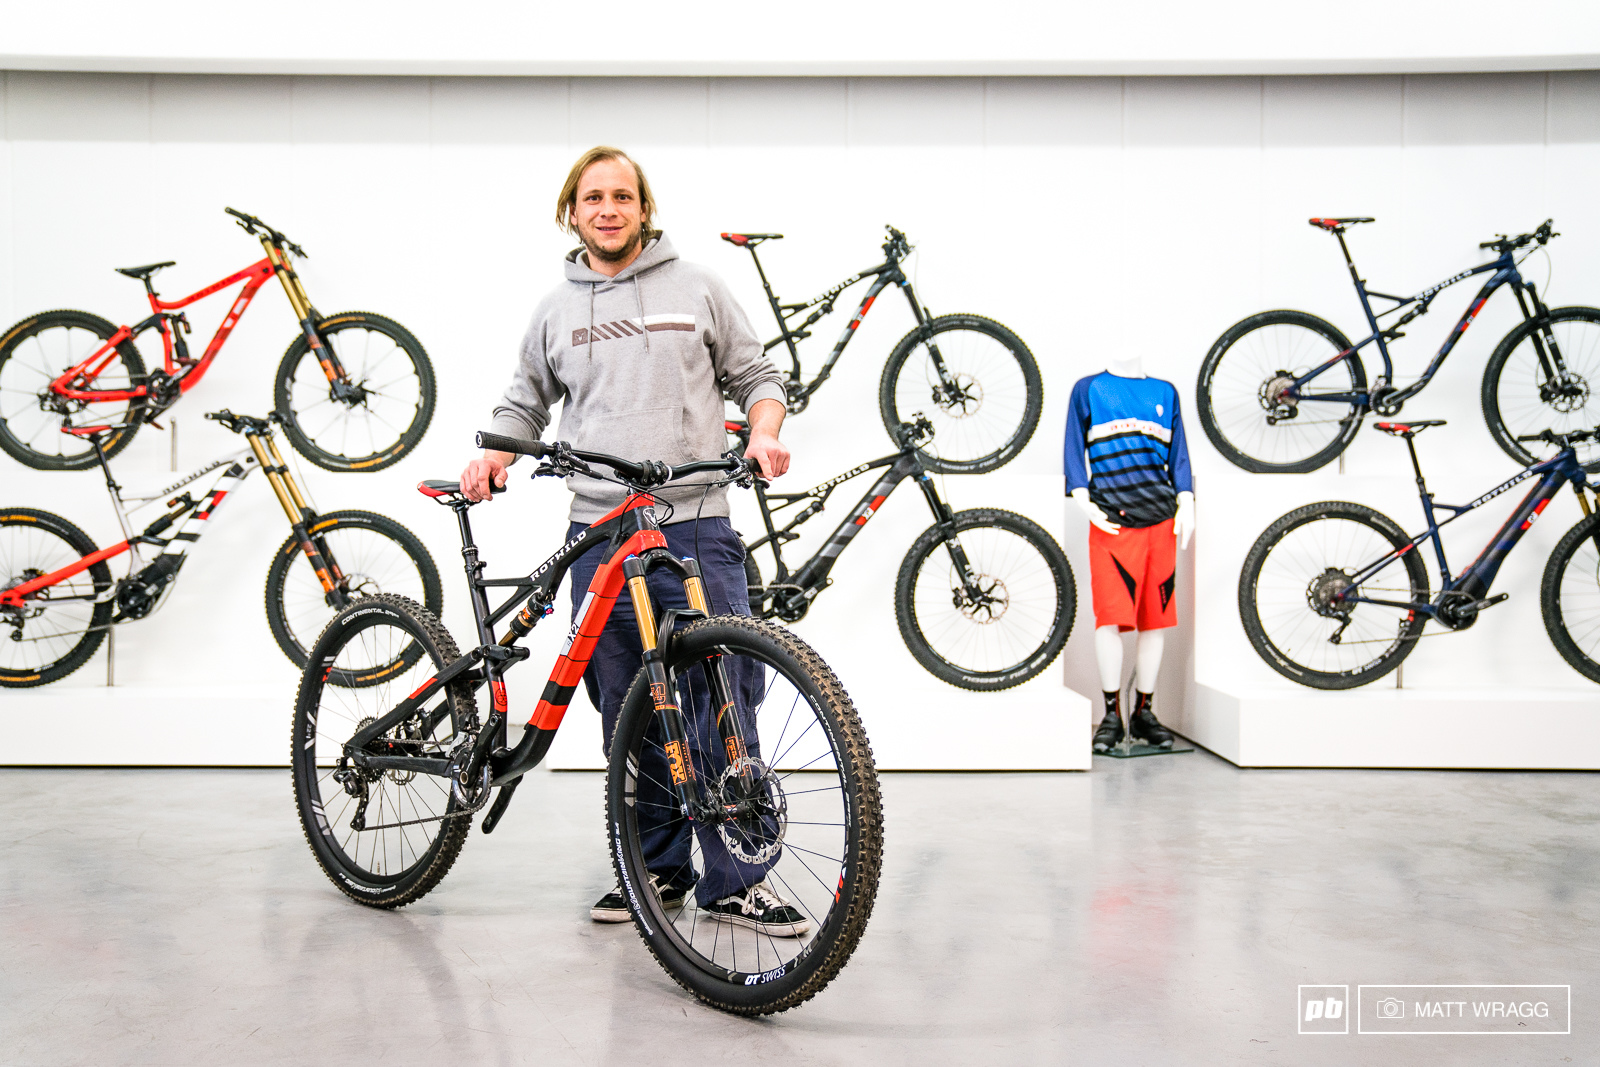 Stefan and his creation - the X2. He is the engineer responsible for this bike and took us through the fine details that make these bikes so special.